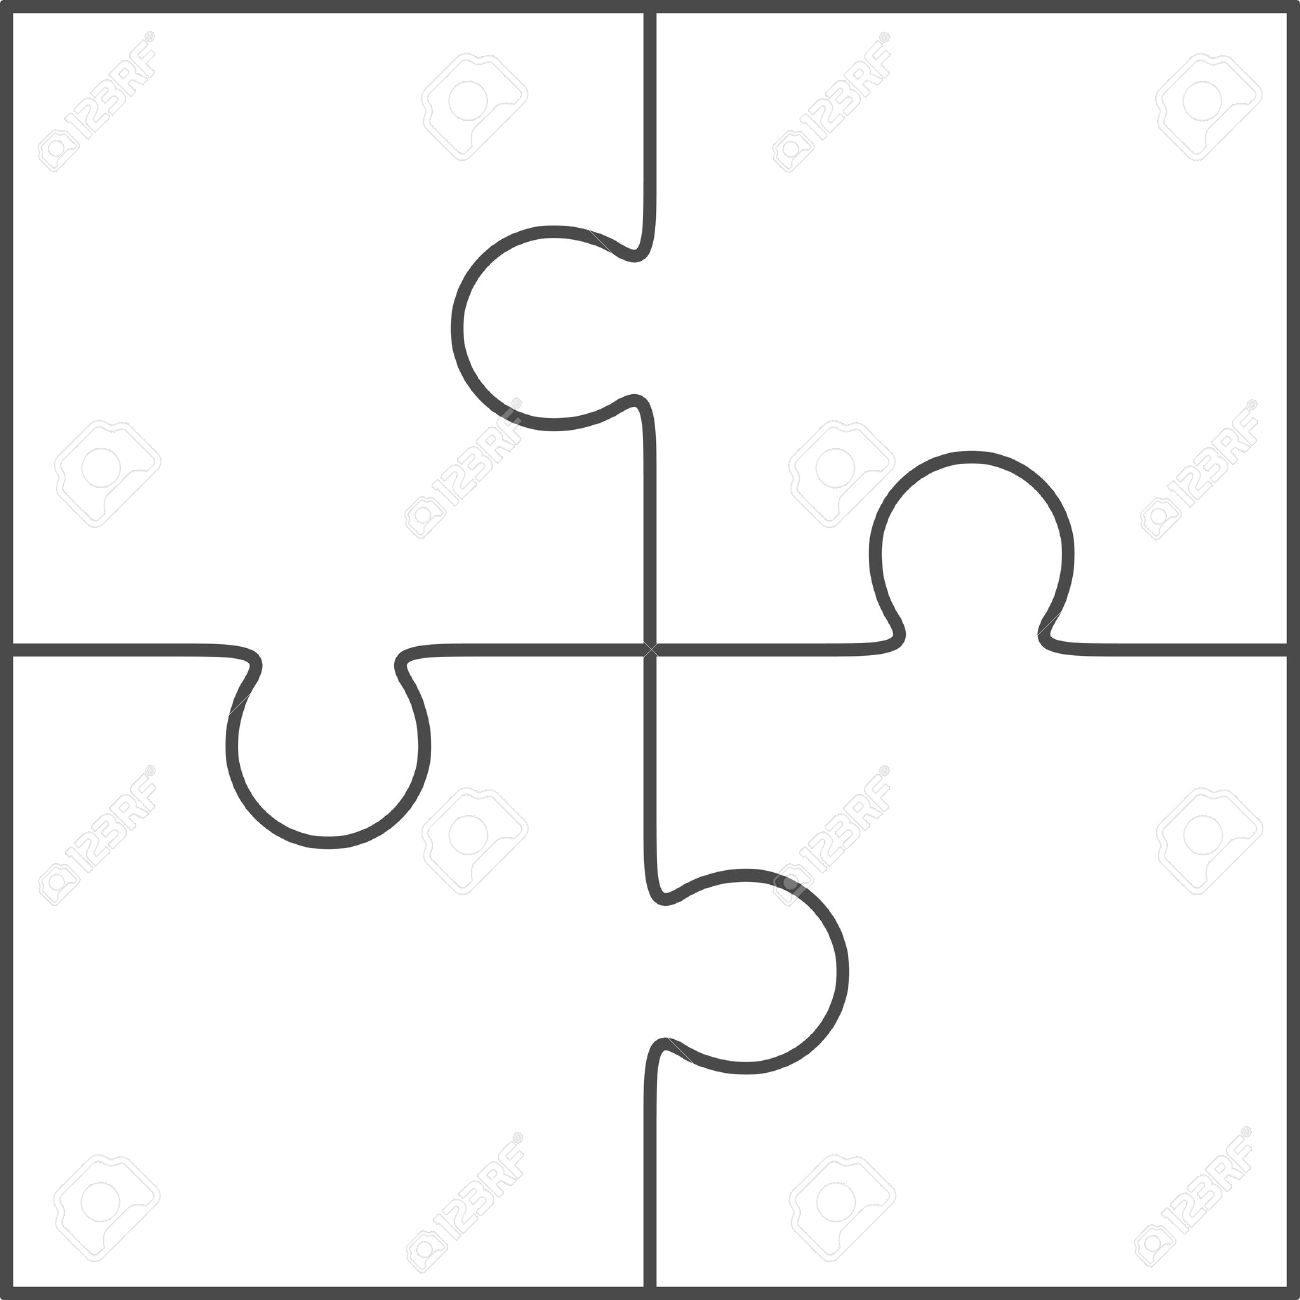 Jigsaw Puzzle Template - Yapis.sticken.co - Printable 4 Piece Puzzle Template